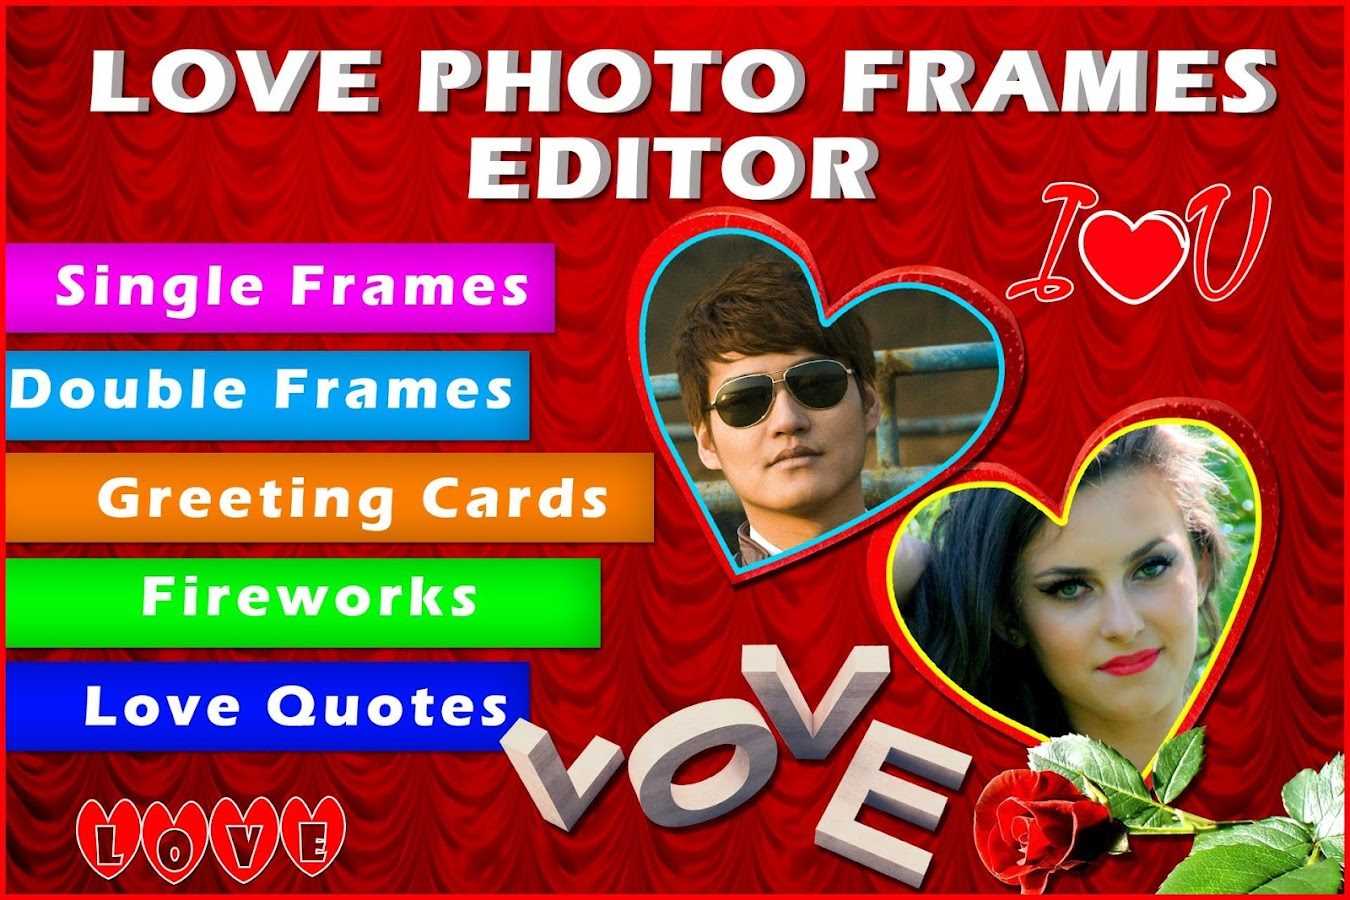 Photo Editor With Love Quotes Love Photo Frames Editor  Android Apps On Google Play